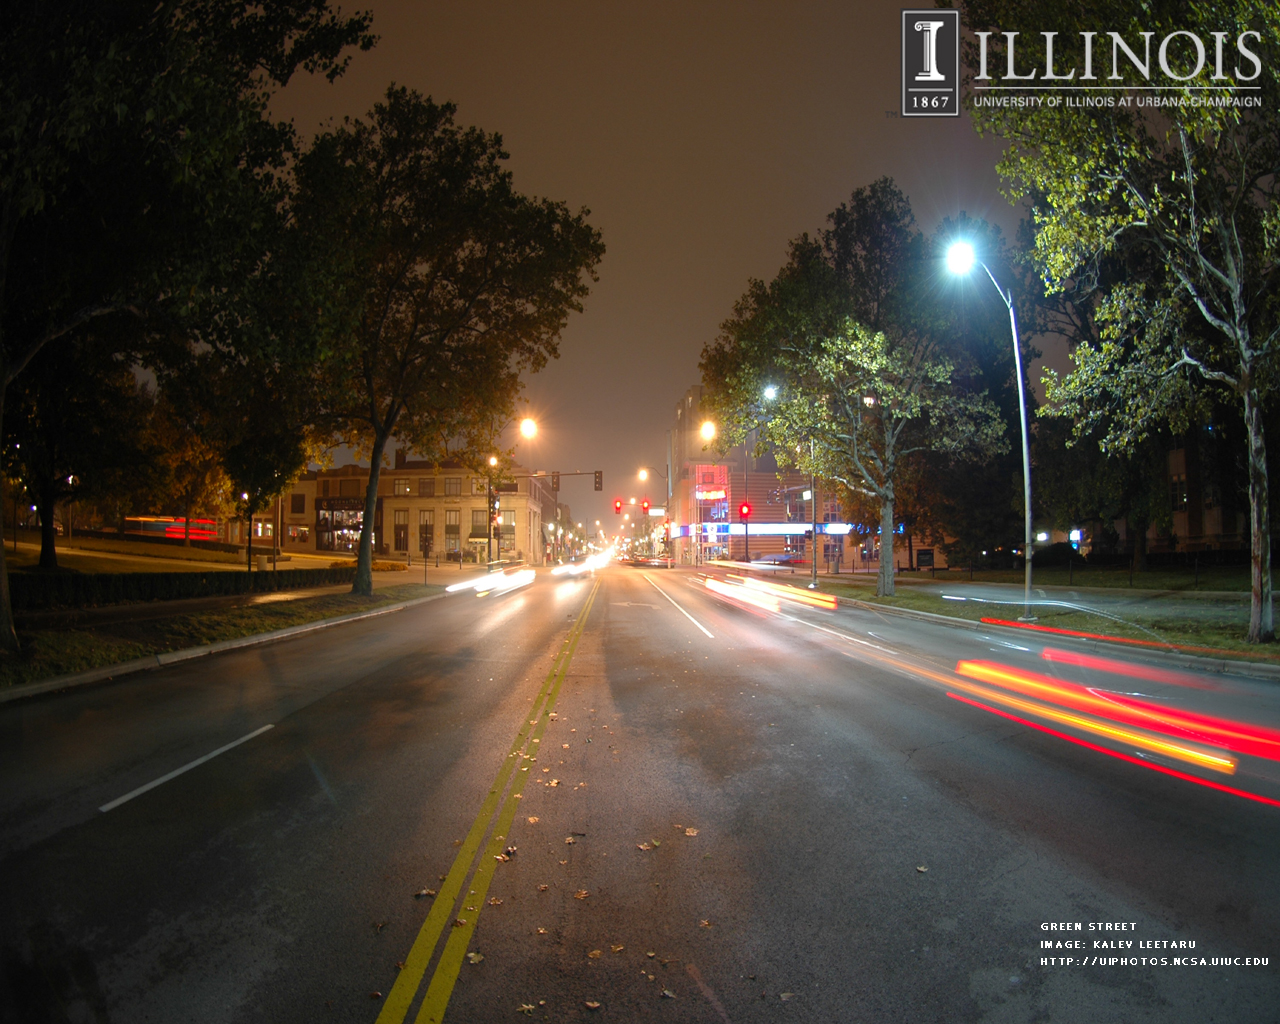 Project A Photographic Record of the University of Illinois 1280x1024